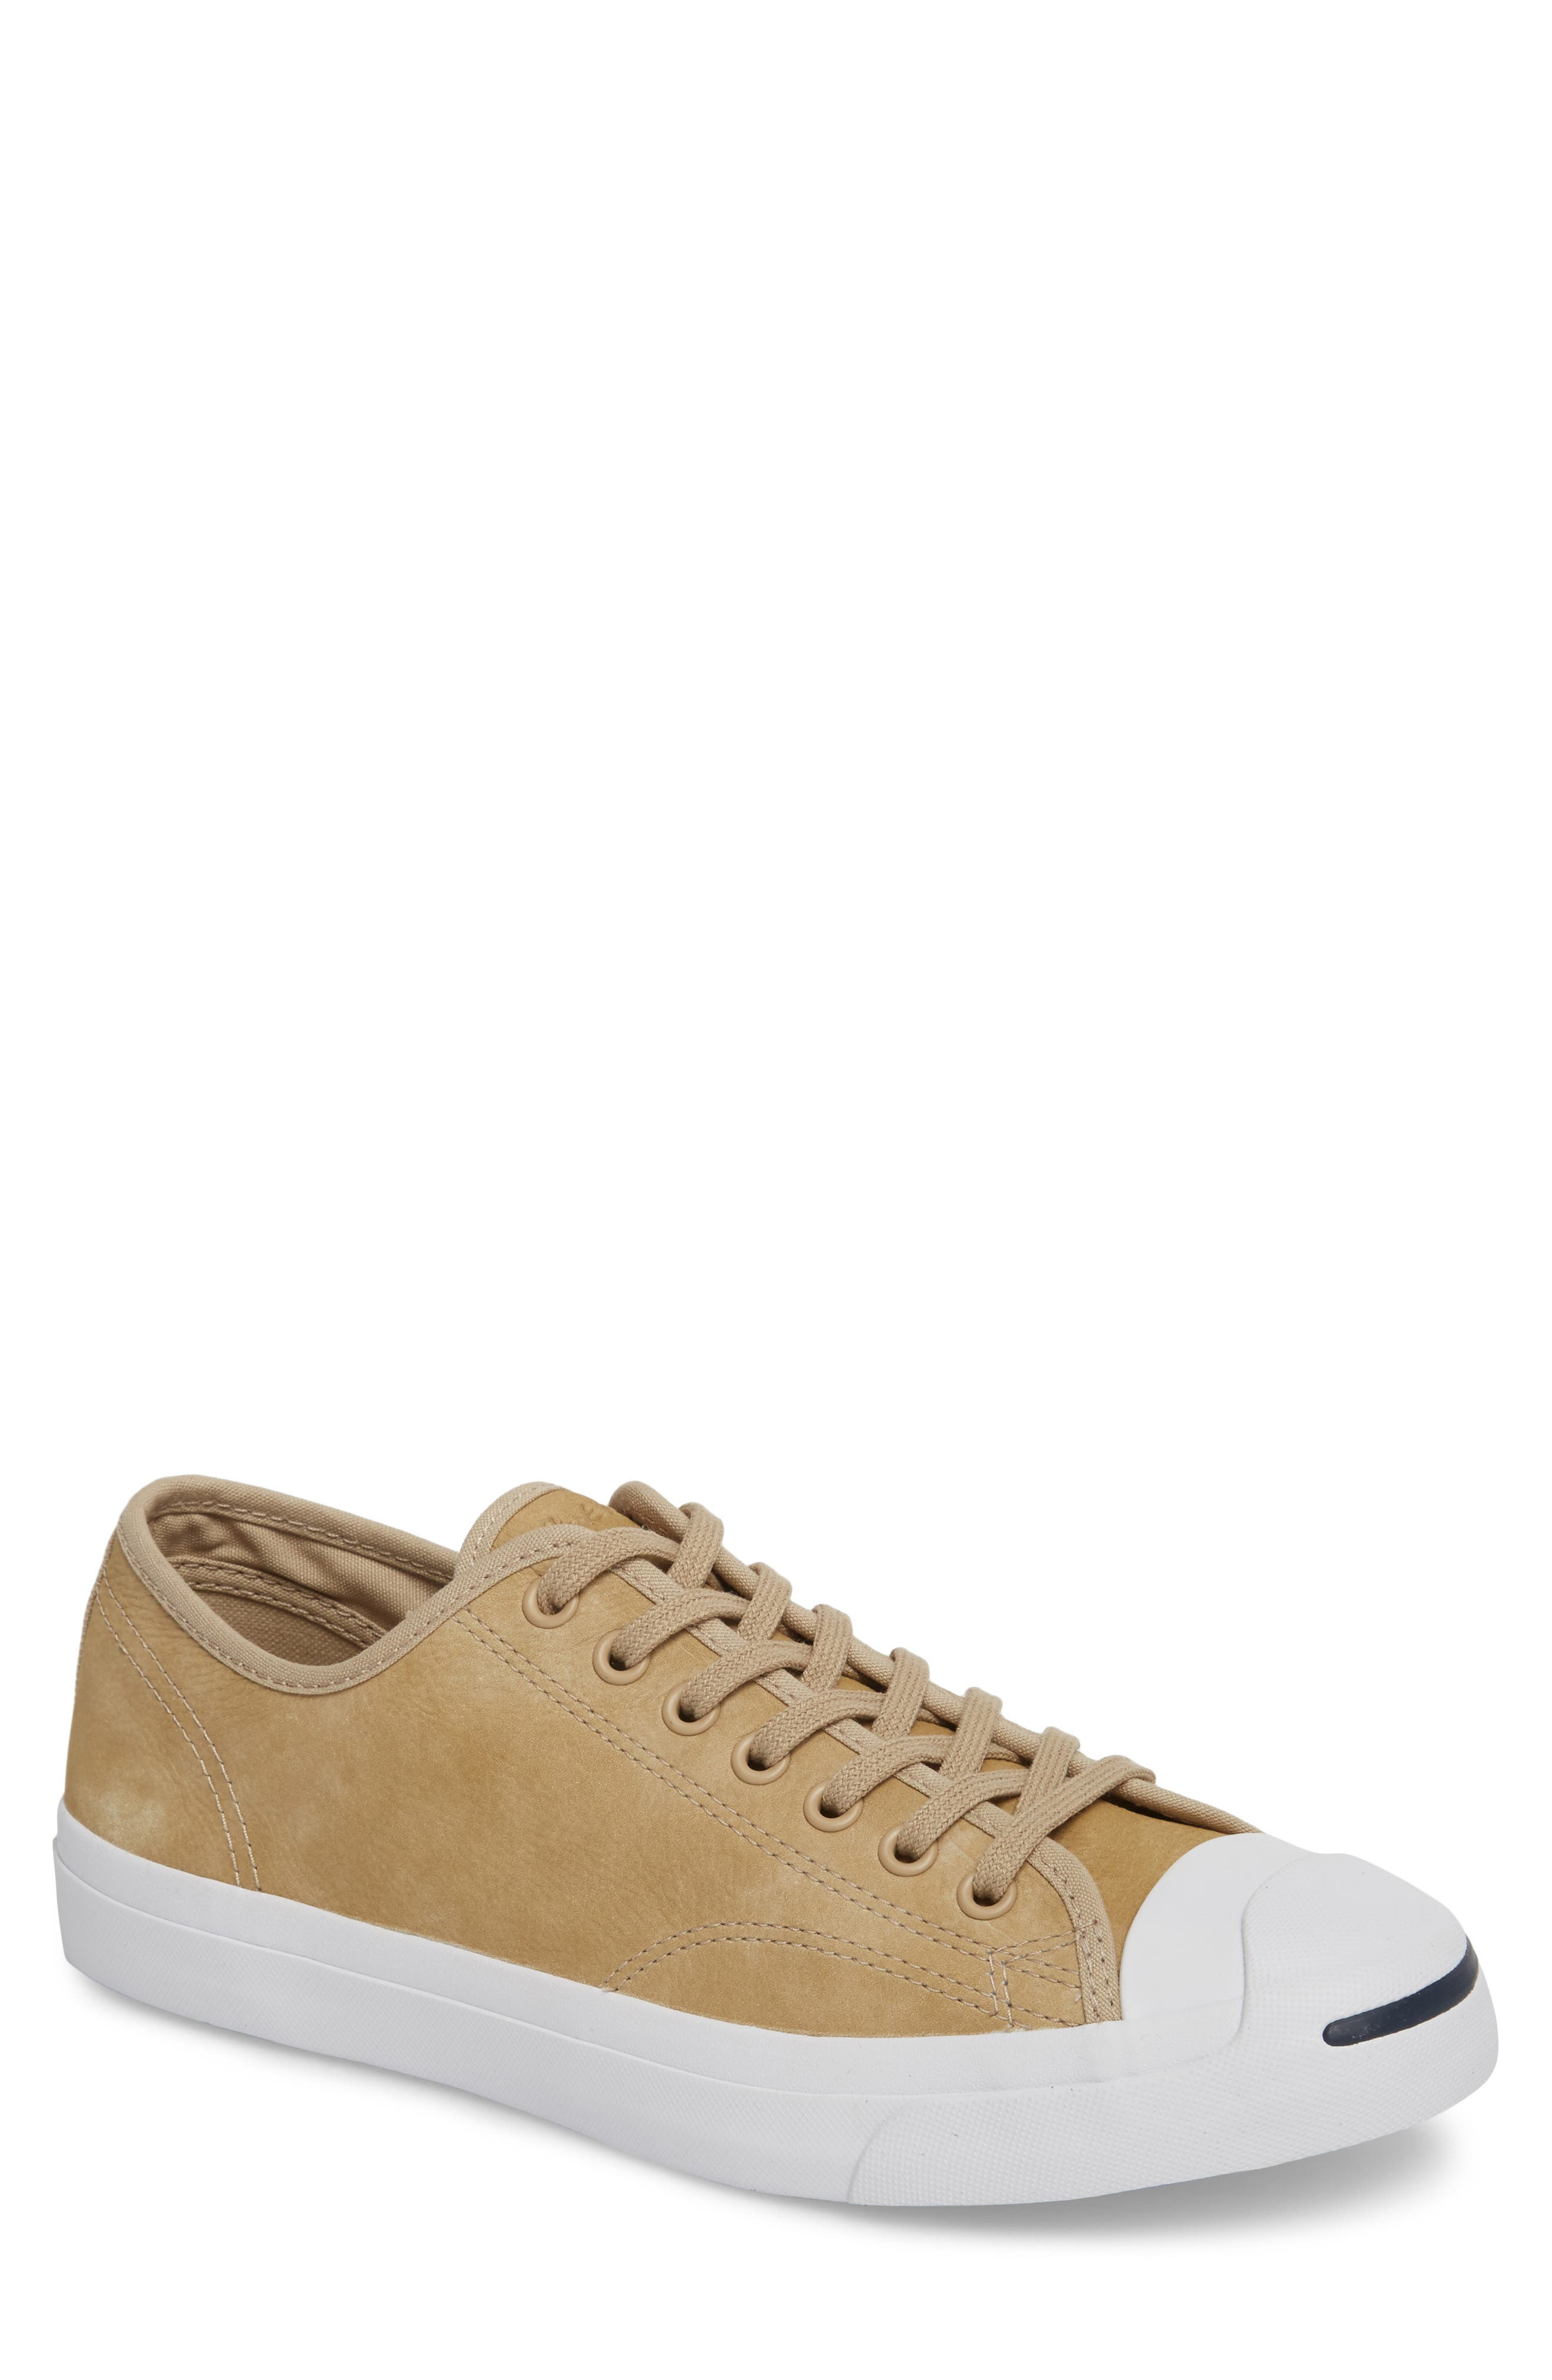 Main Image - Converse 'Jack Purcell - Jack' Sneaker (Men)